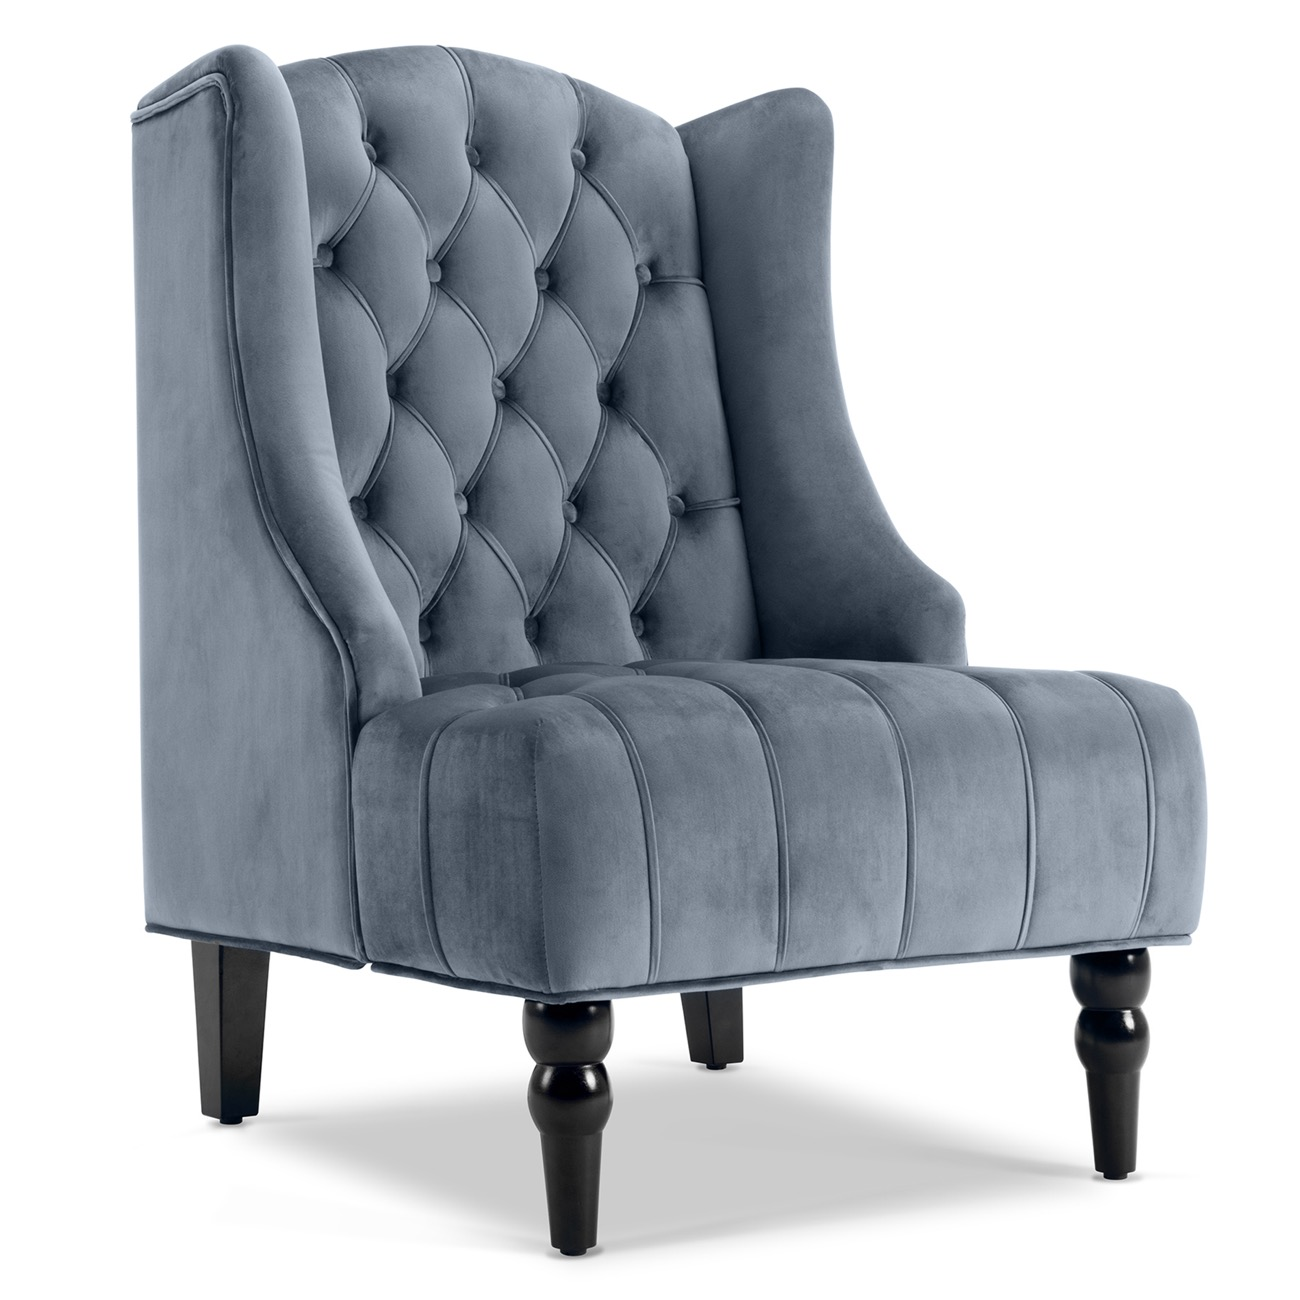 Tufted High Back Chair Details About Wingback Accent Chair Tall High Back Living Room Tufted Nailhead Gray Beige